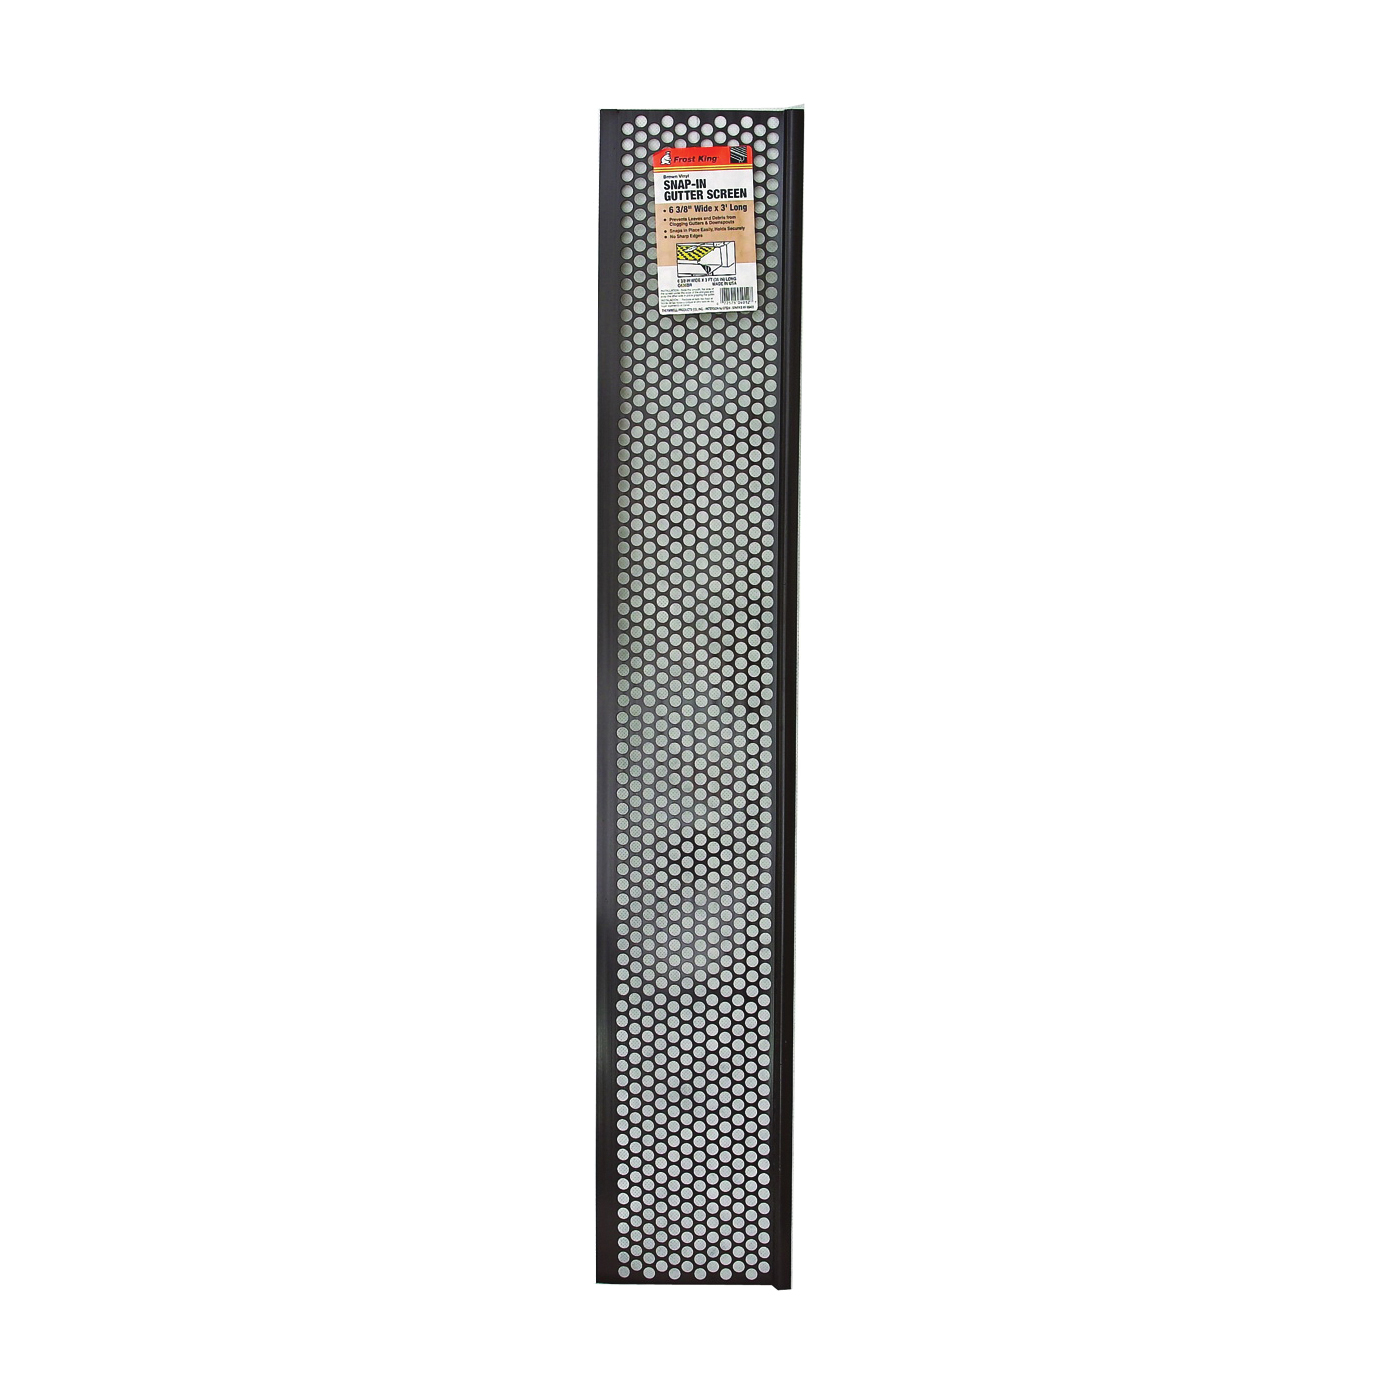 Picture of Frost King G636BR Gutter Screen, 3 ft L, 6-5/8 in W, Vinyl, Brown